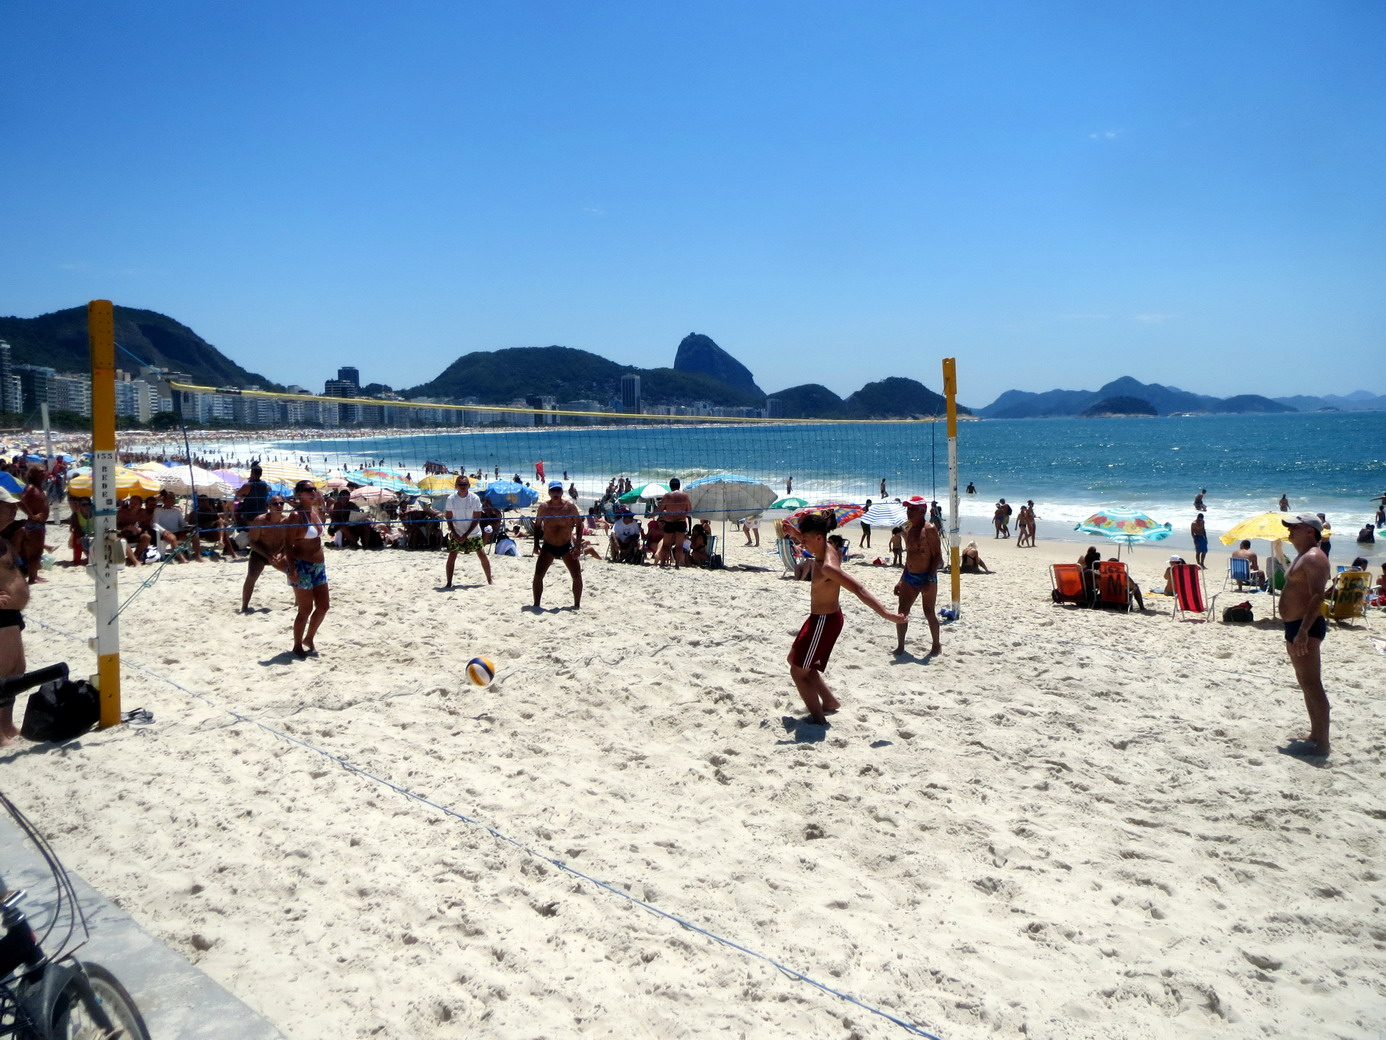 42. Plage de Copacabana, beach volley, sport national